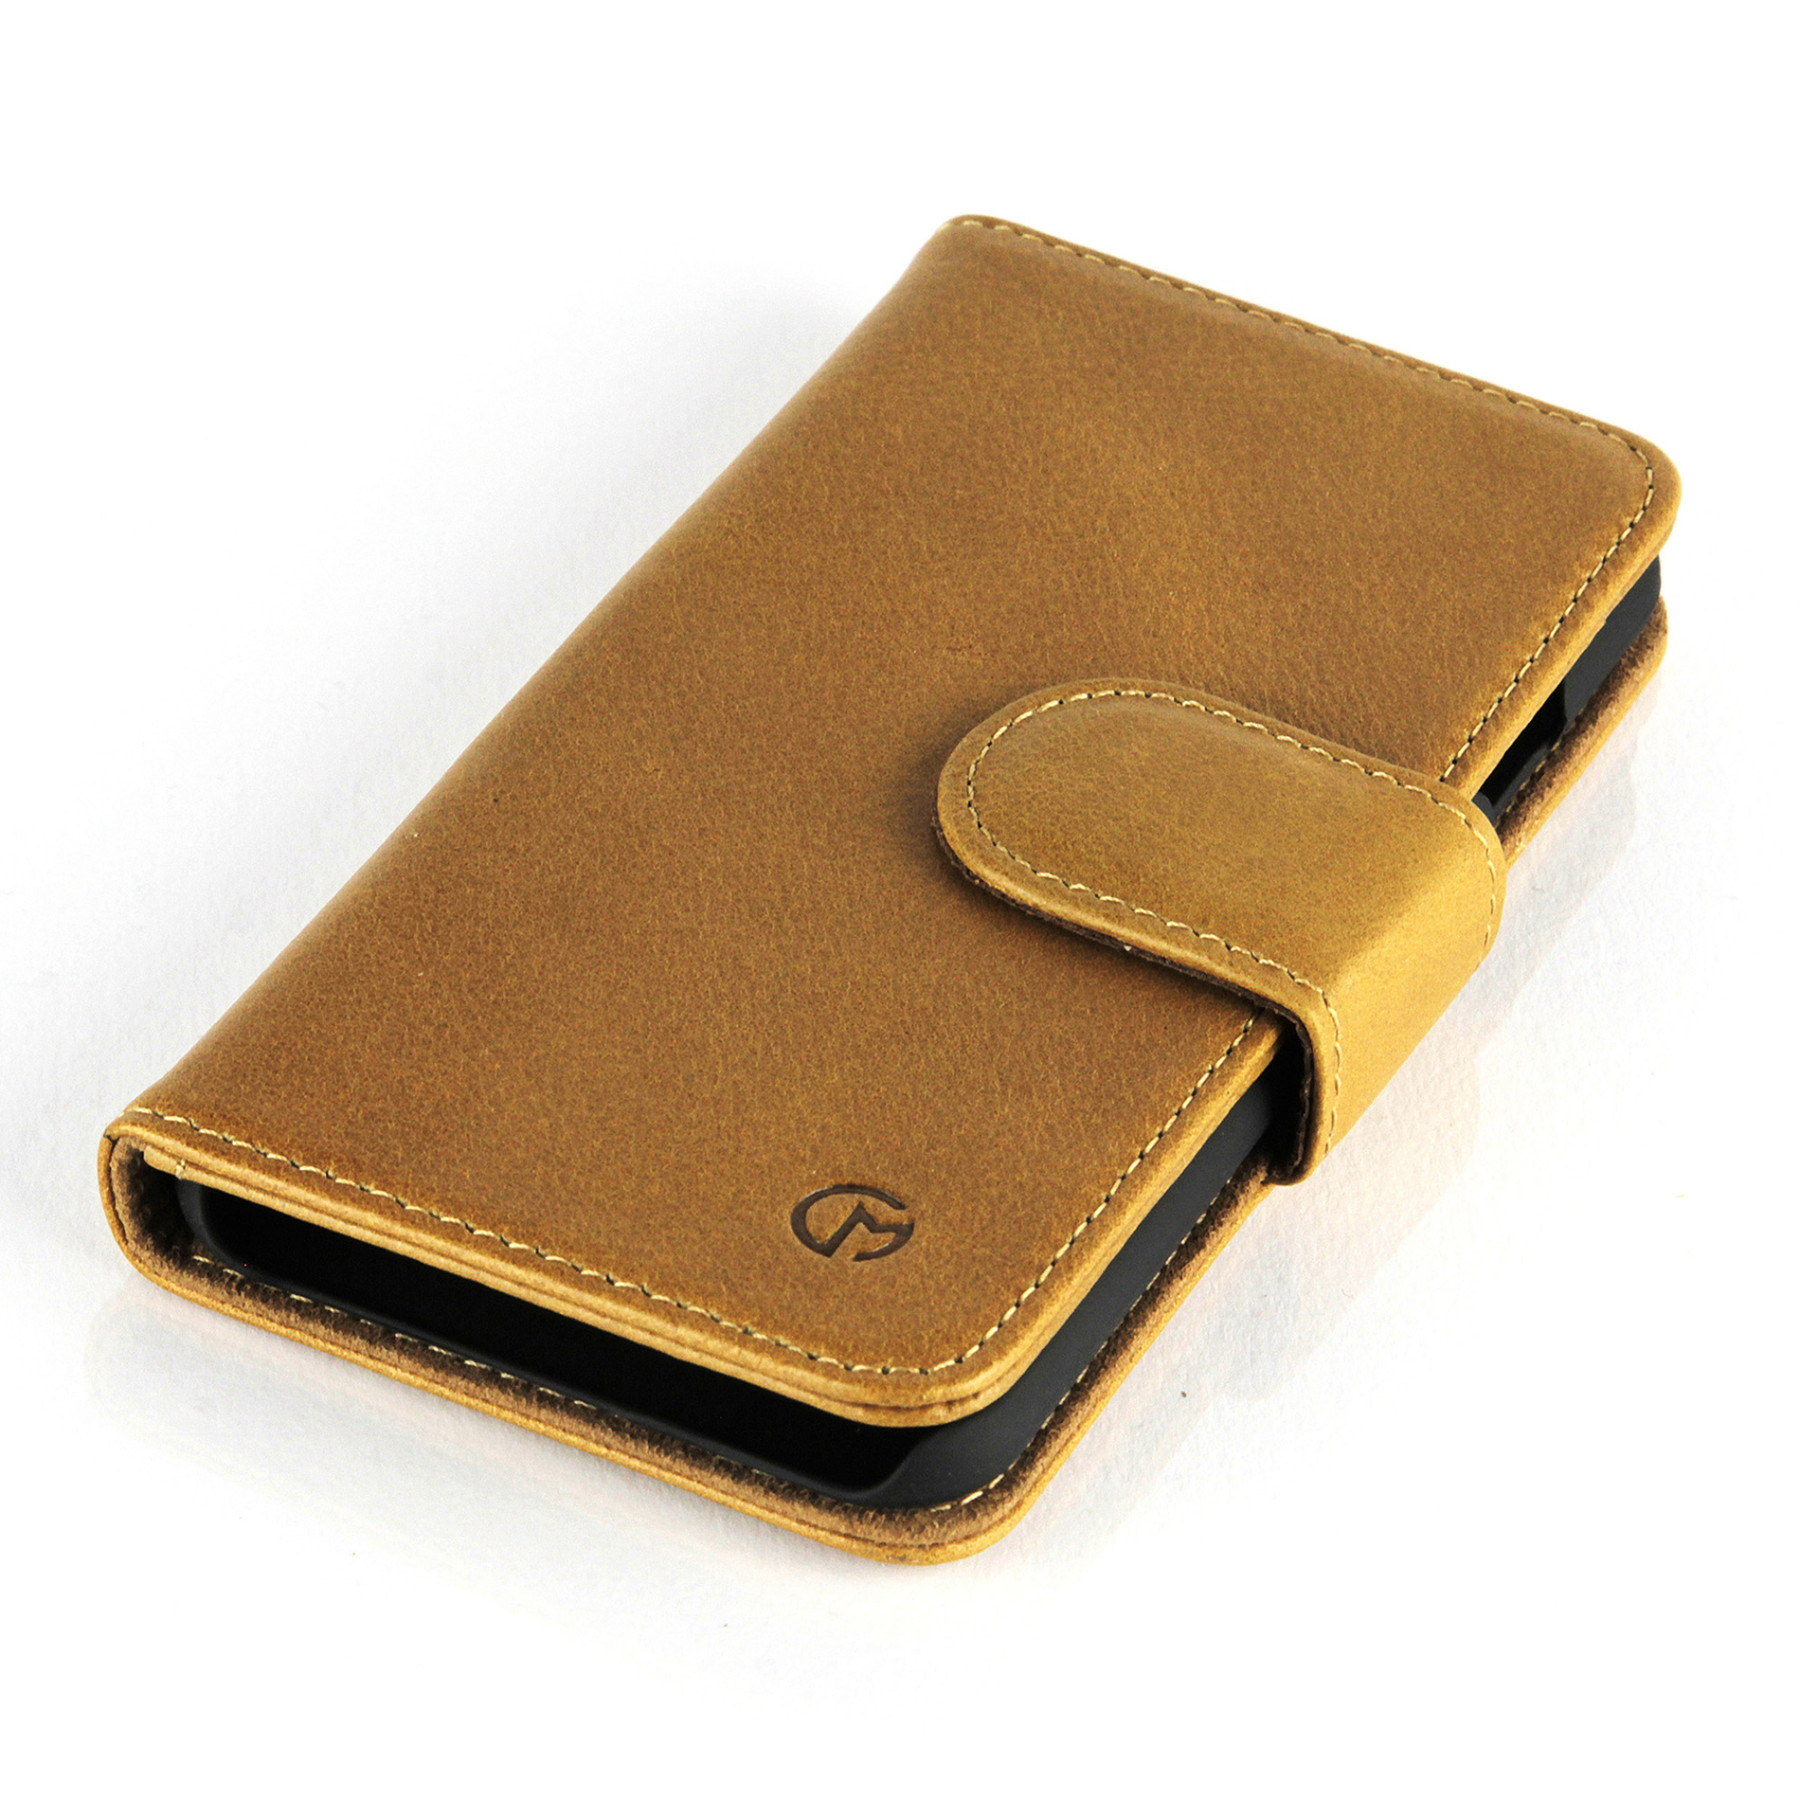 Iphone S Tan Leather Case